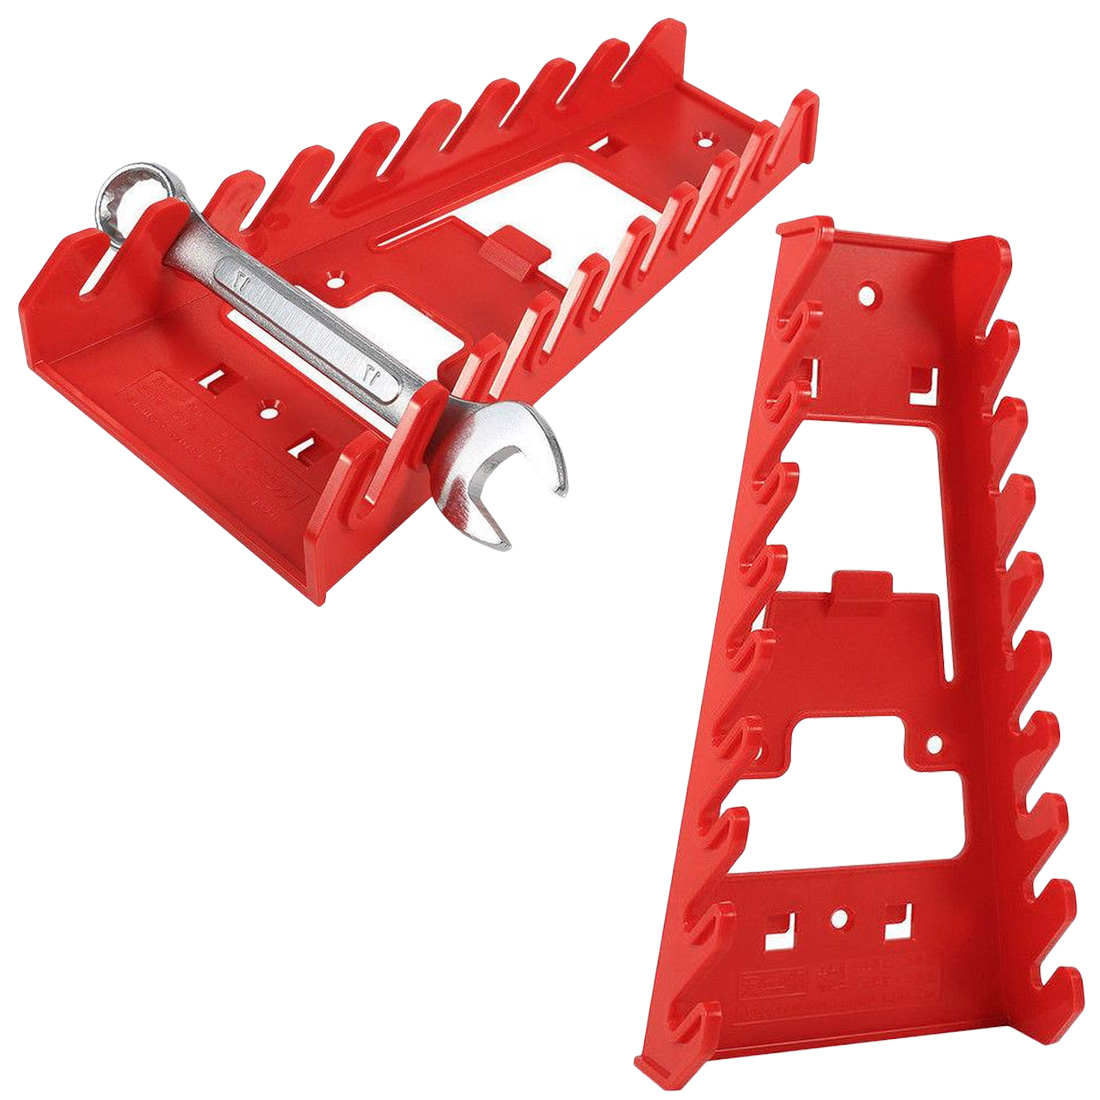 Standard Organizer Holder Tools Plastic Spanner Rack Wrench Holder Storage Rack Rail TrayStandard Organizer Holder Tools Plastic Spanner Rack Wrench Holder Storage Rack Rail Tray